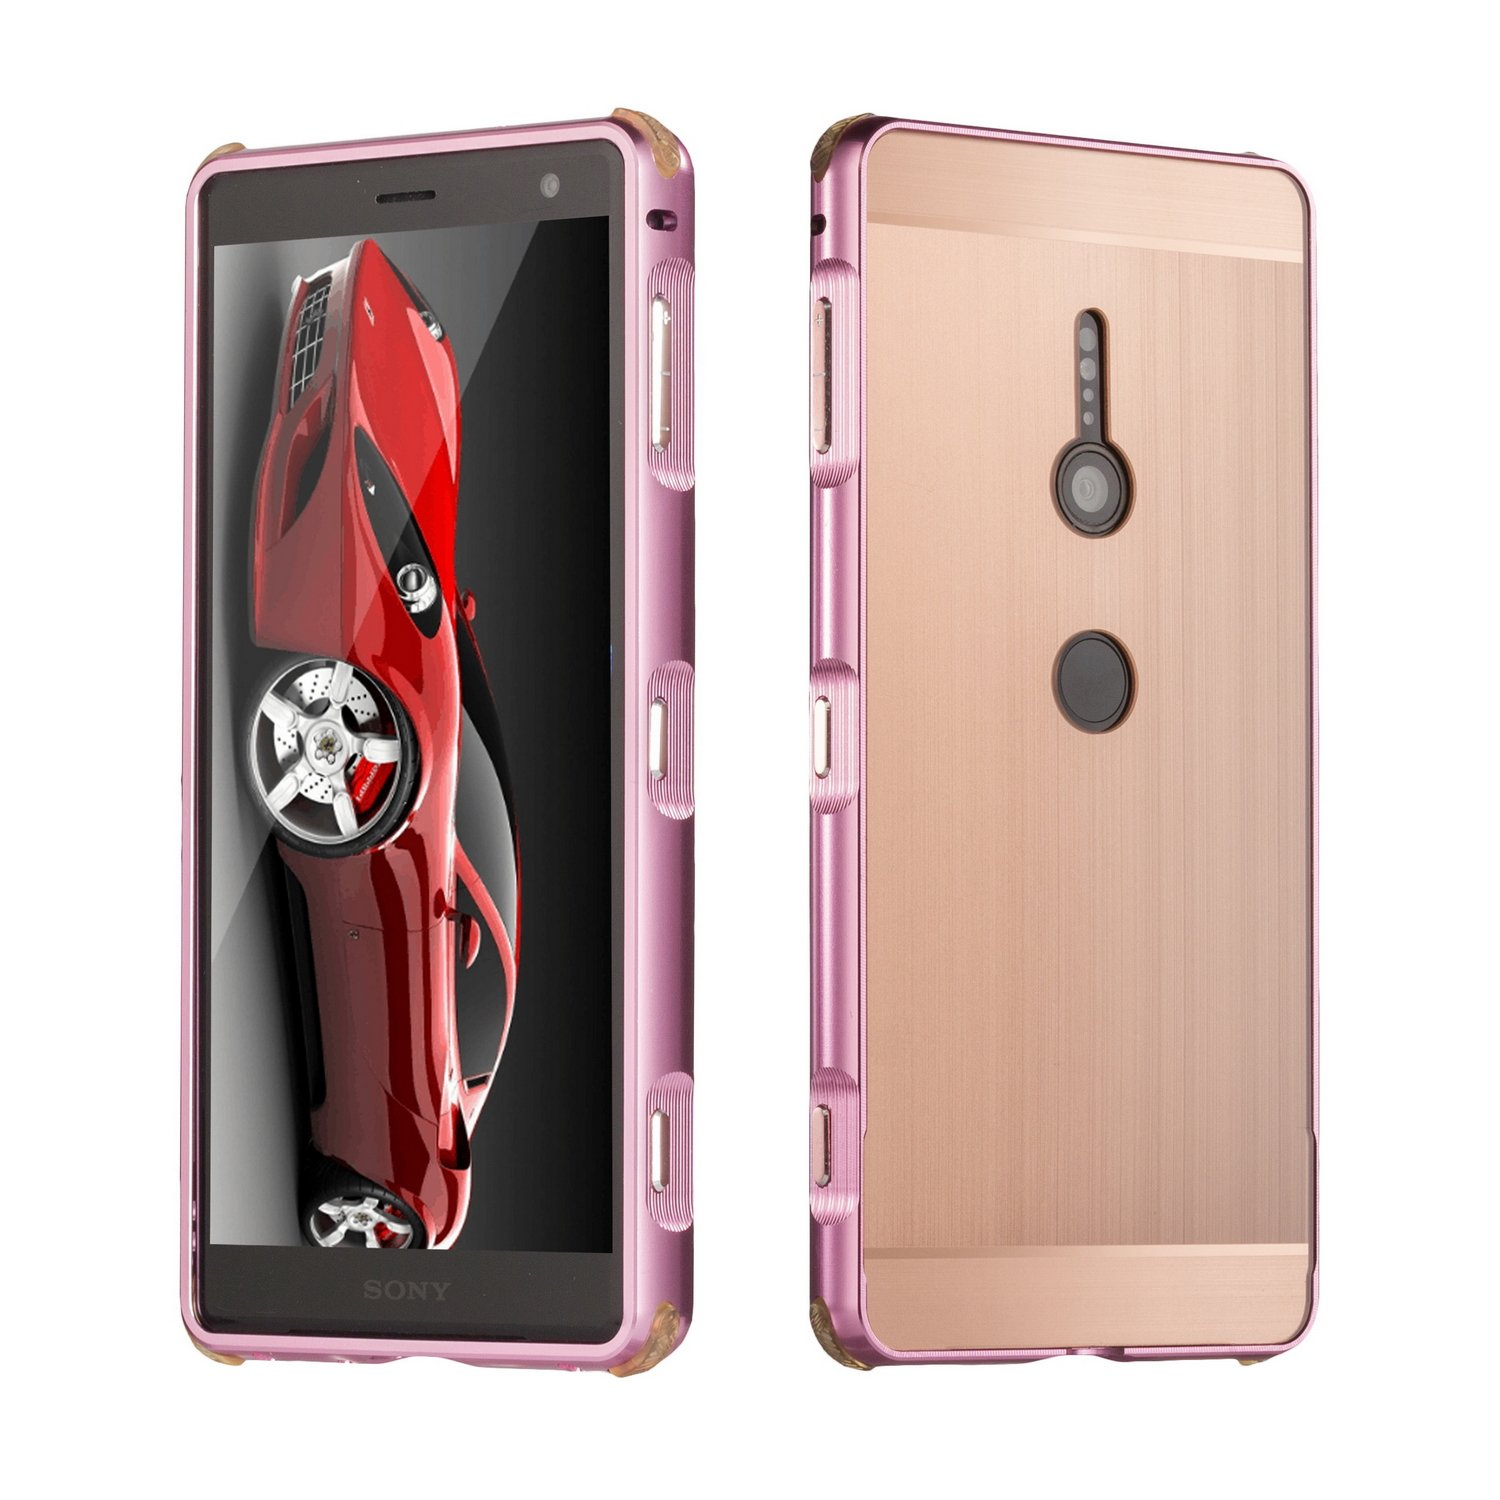 DAMONDY Xperia XZ2 Case, Luxury Ultra thin Imitation Metal Brushed Premium Aluminum Shockproof Protective Bumper Hard Back Cover Case for Sony Xperia XZ2-Rose by DAMONDY